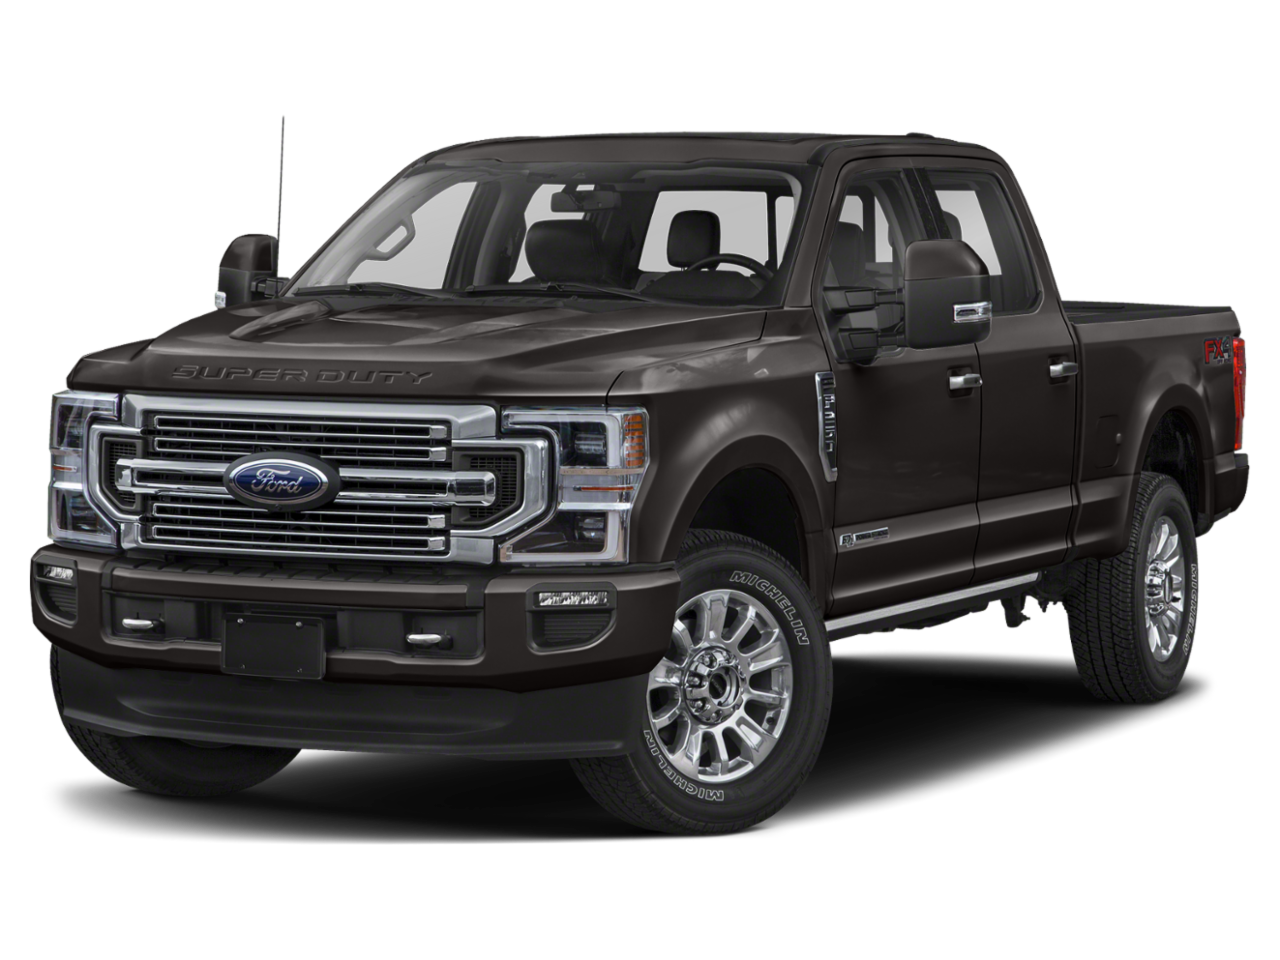 Ford 2020 Super Duty F-350 DRW Limited